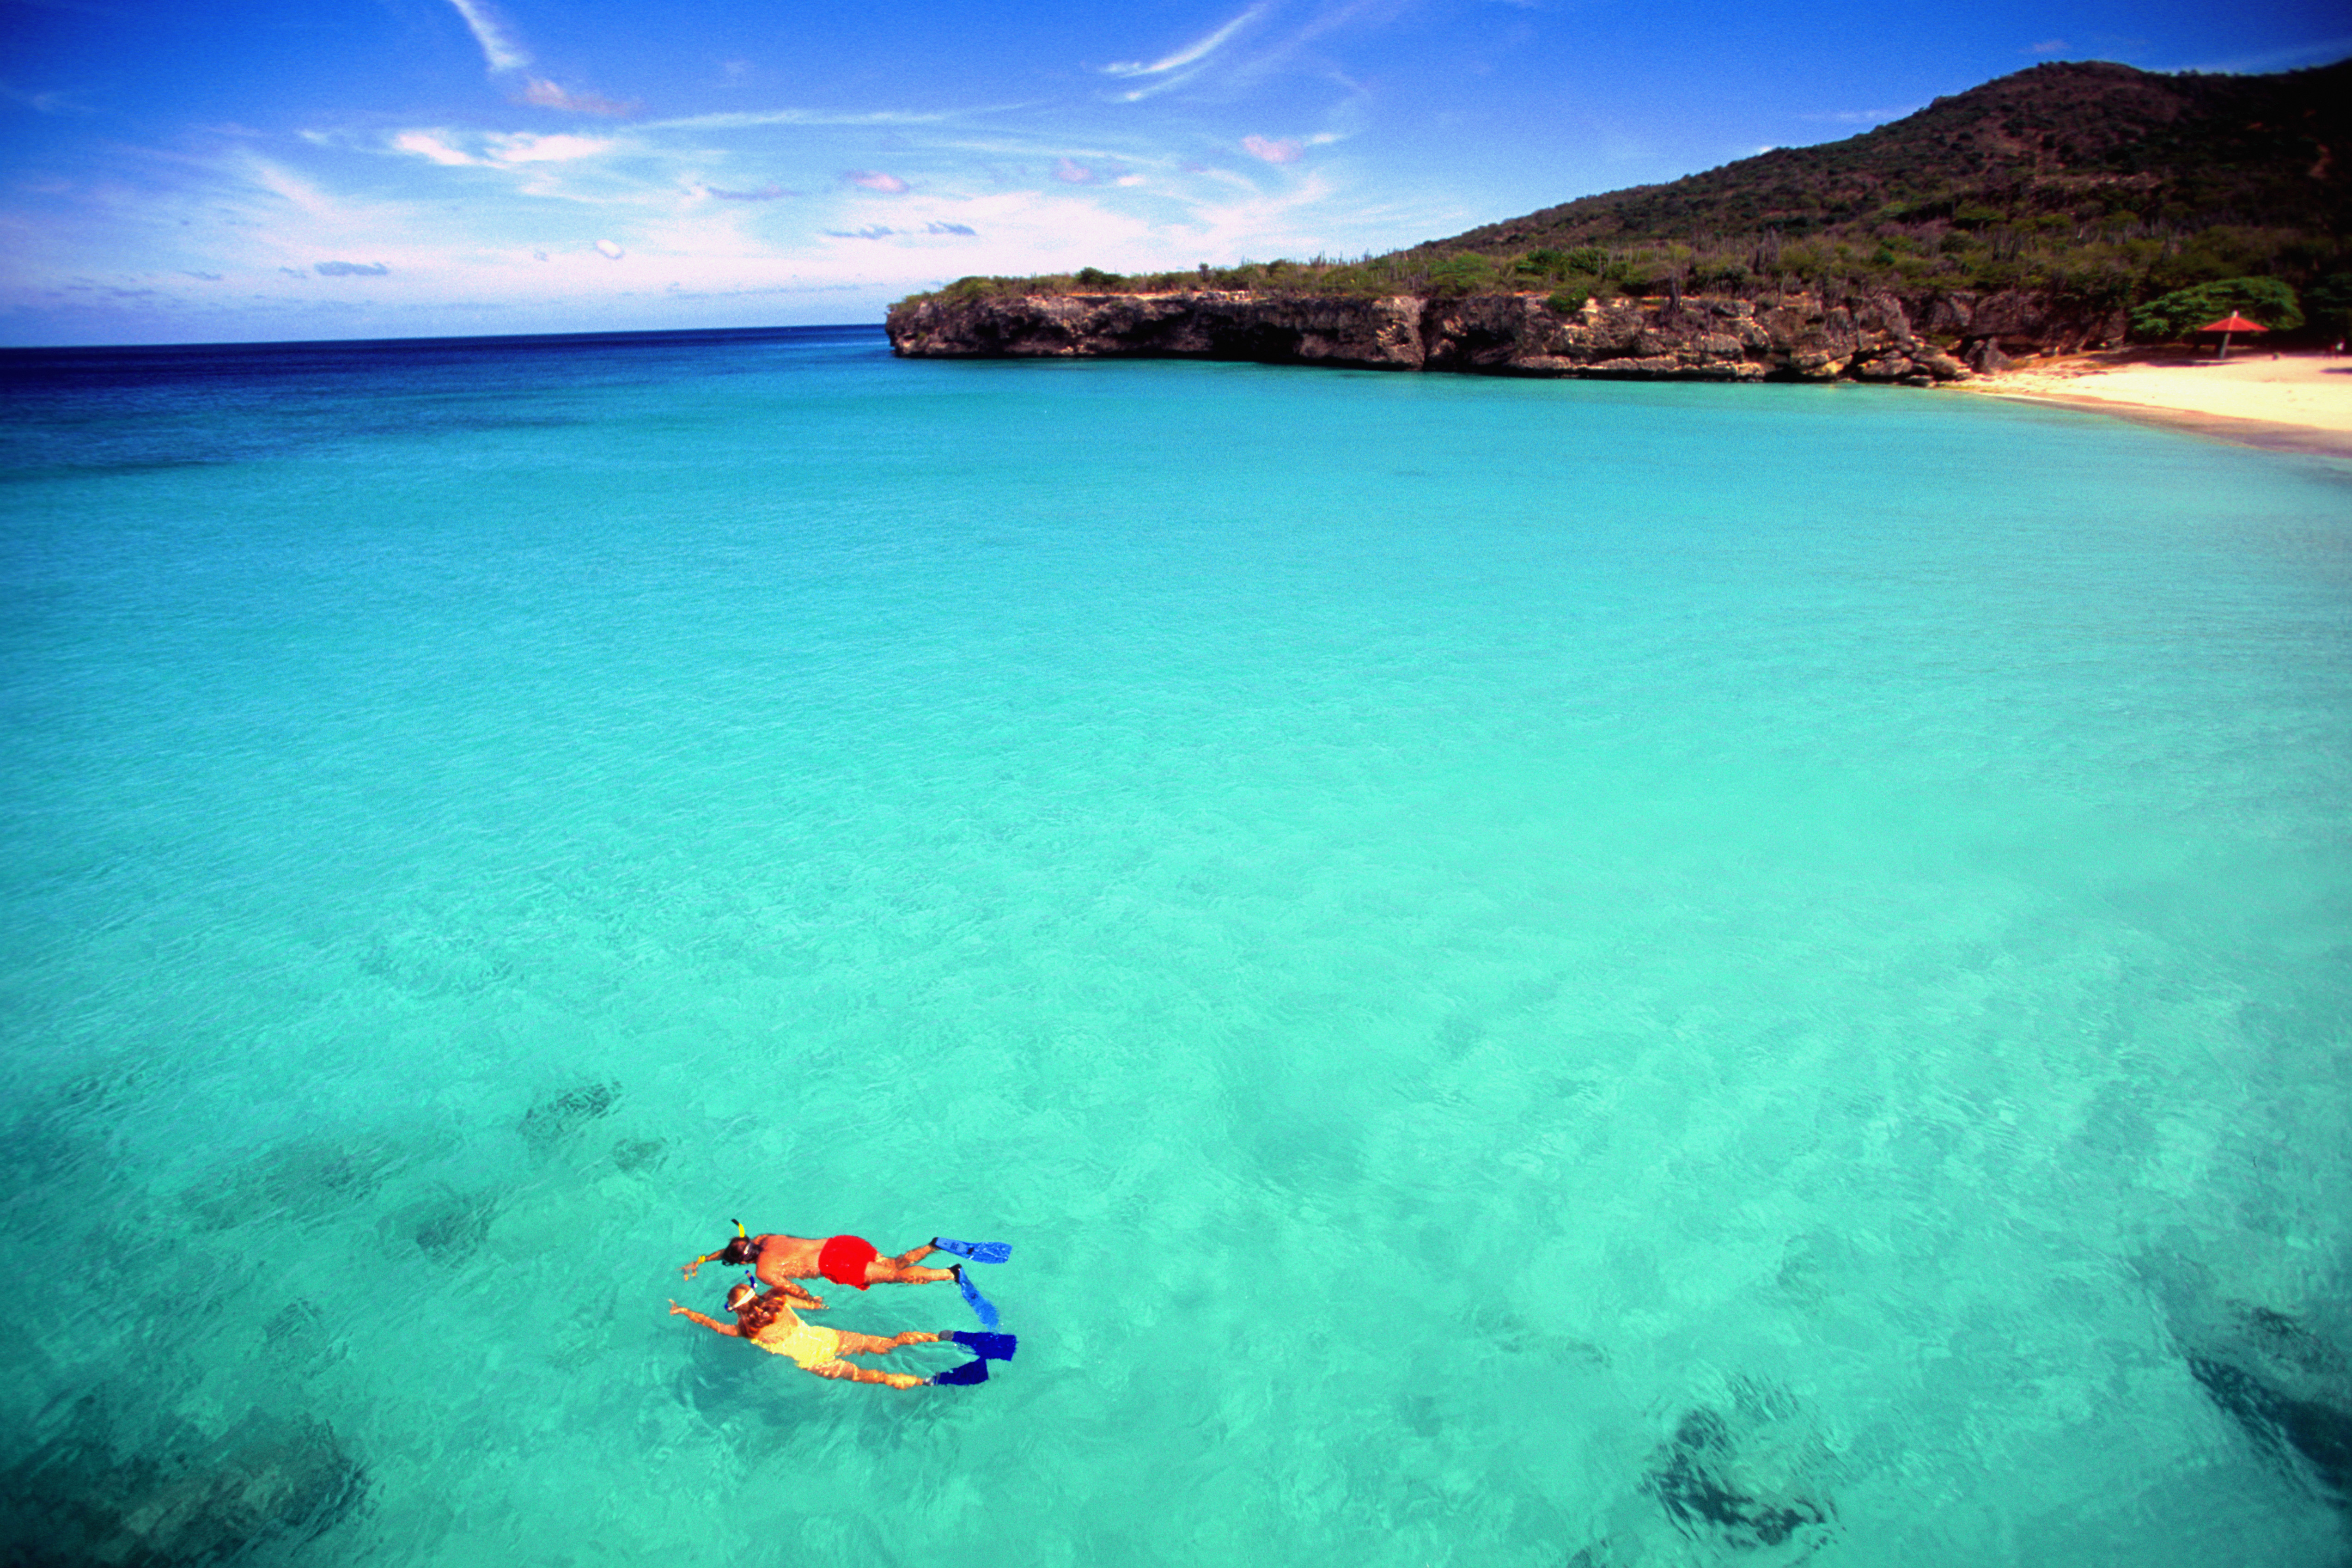 Couple snorkeling in transparent transparent H2O off Knip Beach in Curacao.